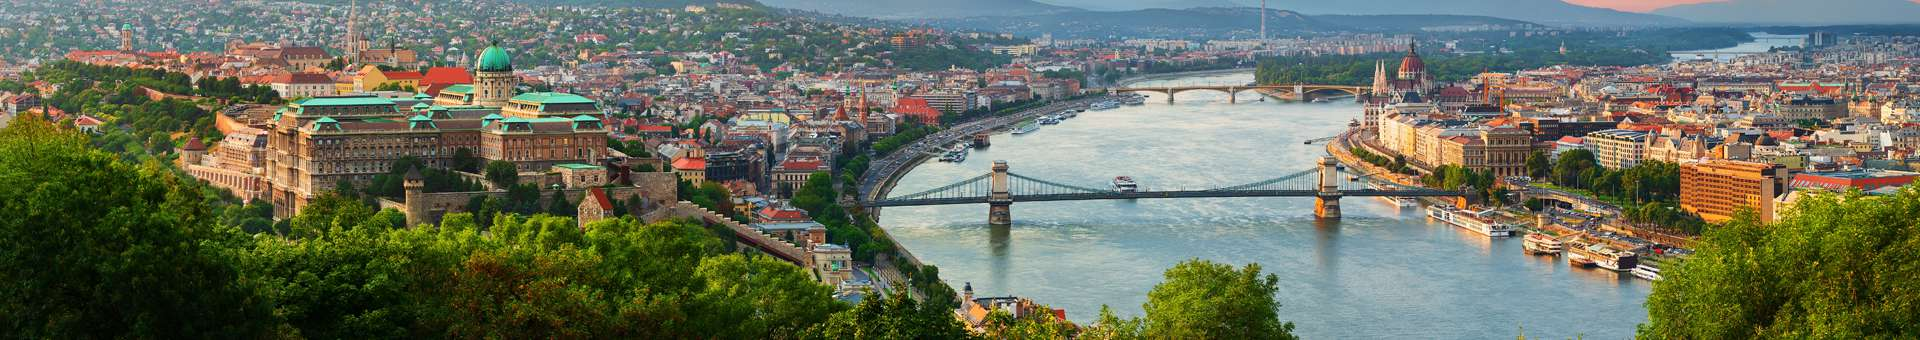 Search Whois information of domain names in Hungary